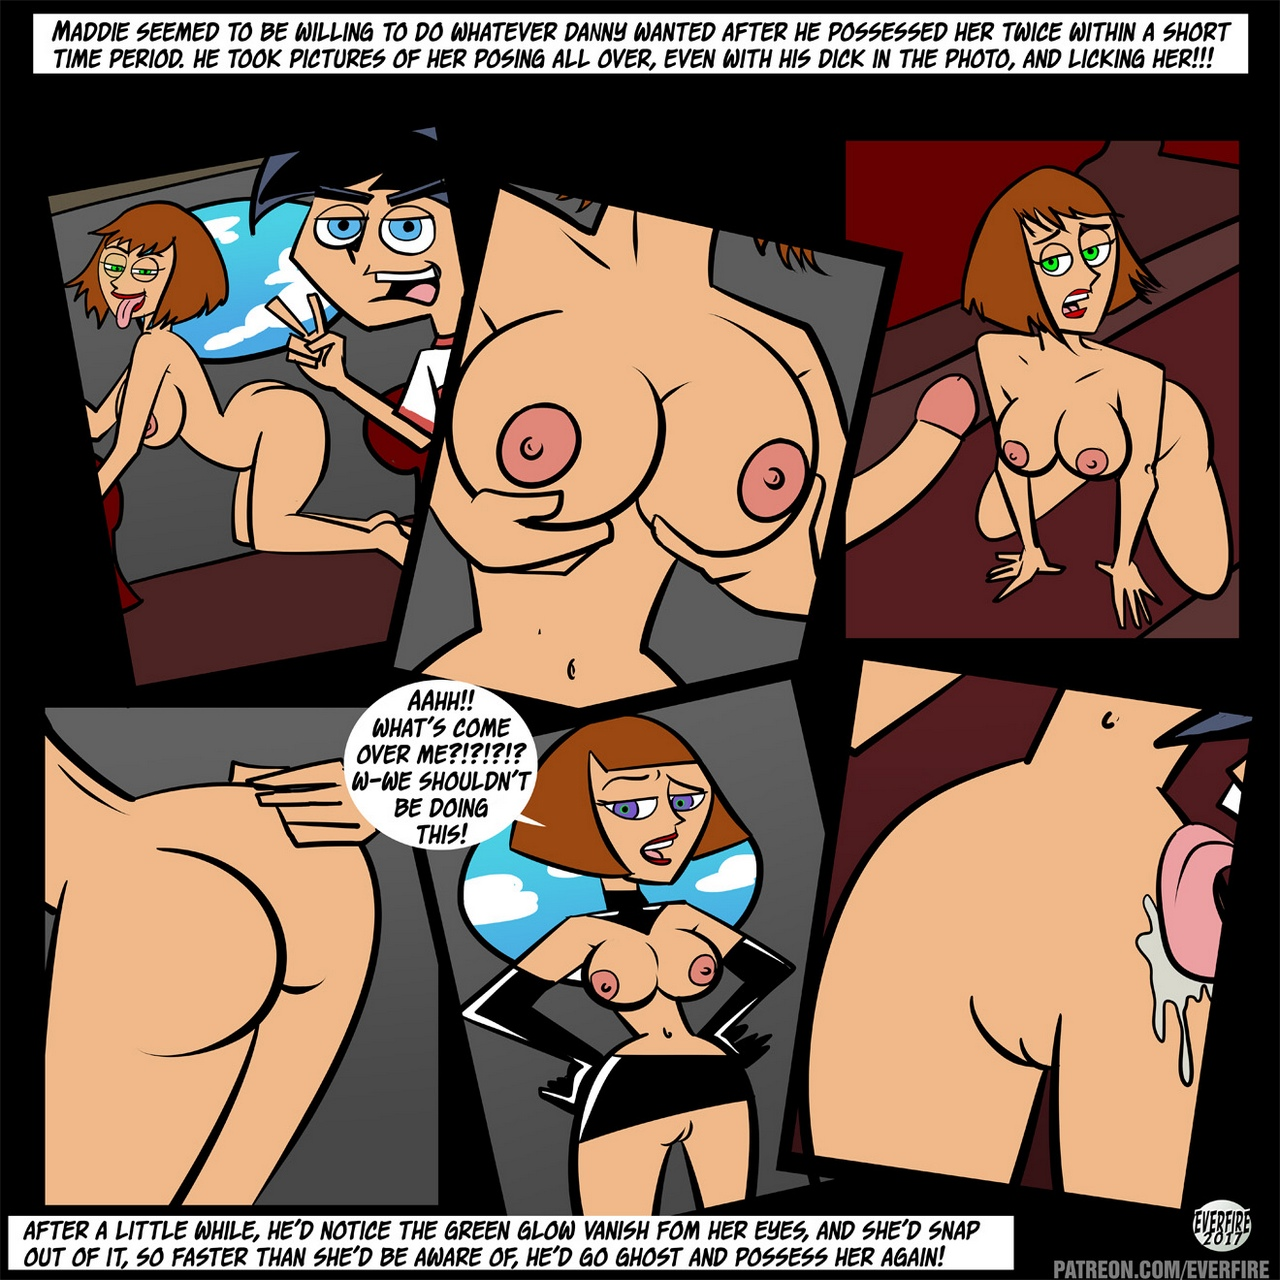 Danny-Phantom-An-Erotic-Parody 10 free sex comic